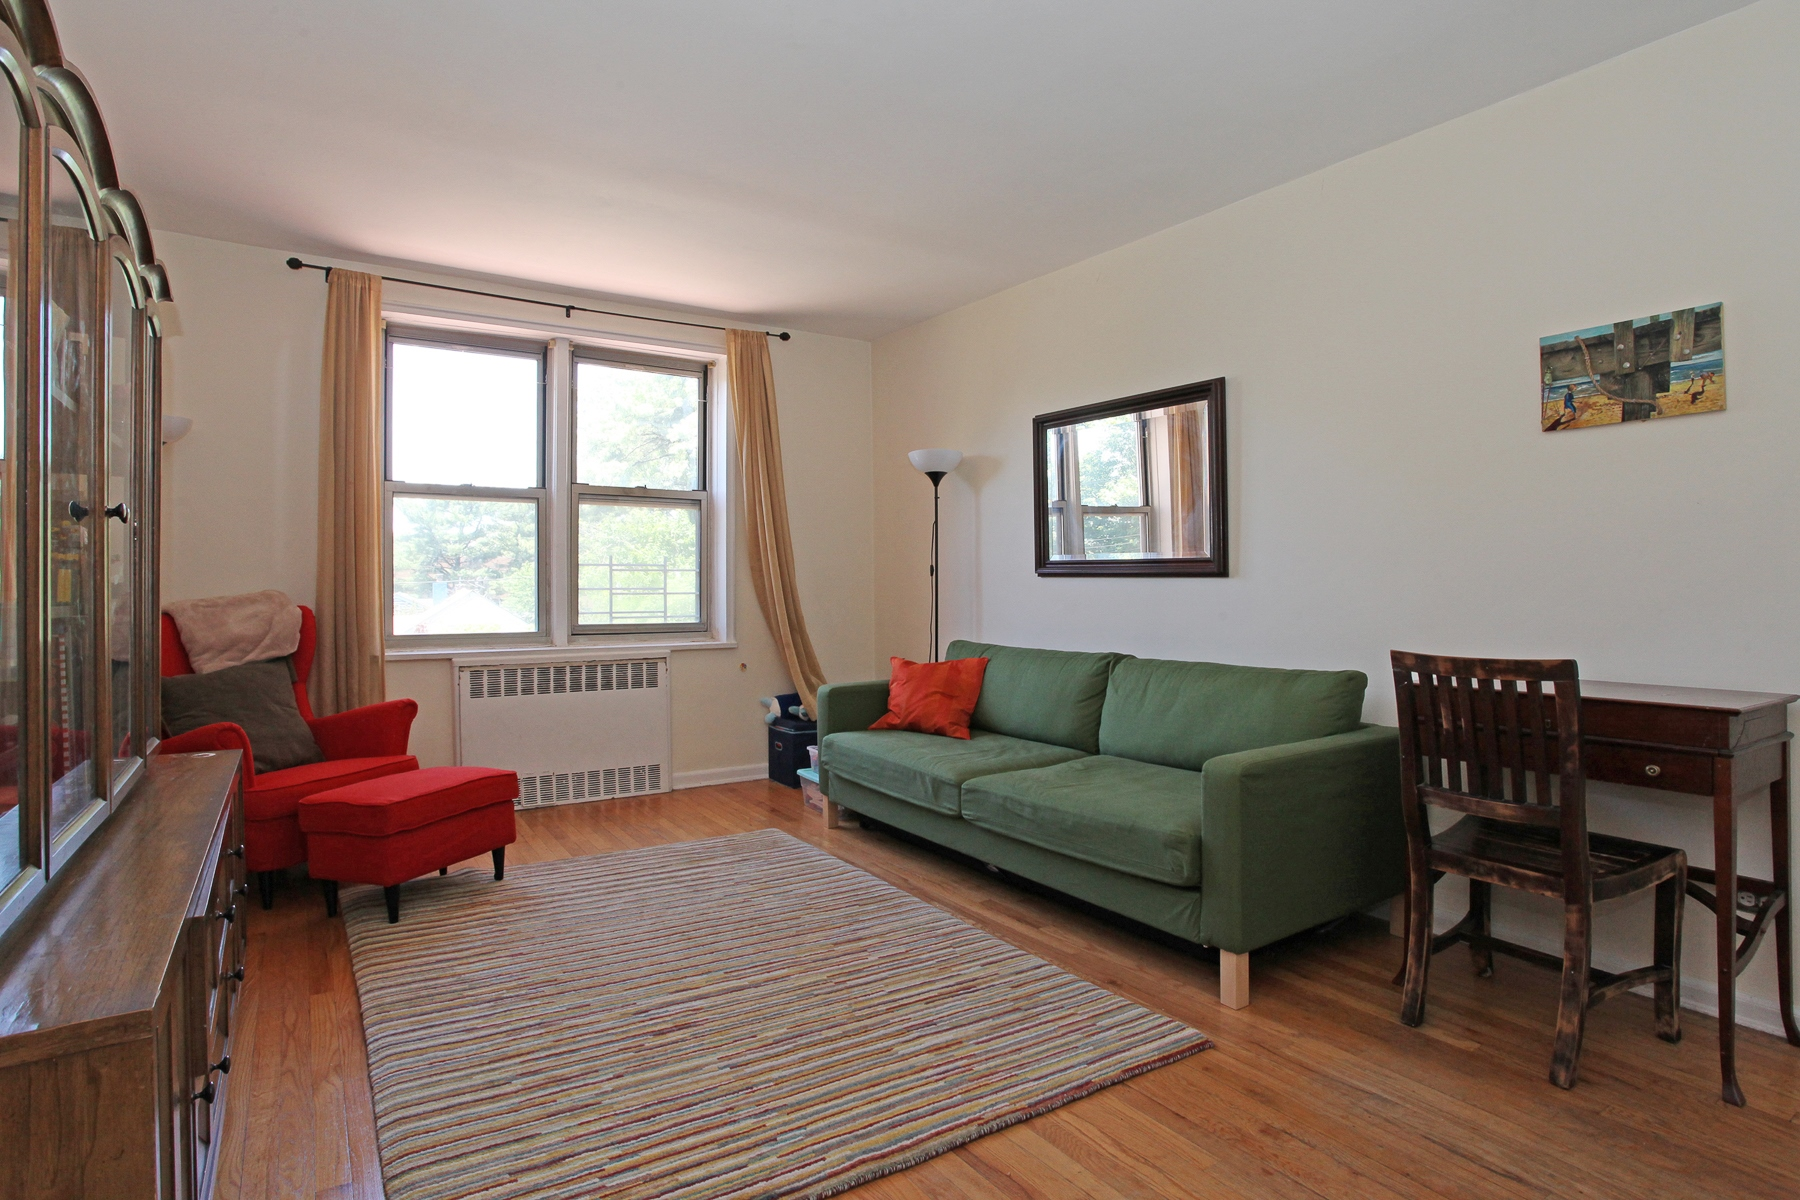 Property For Sale at Renovated and Spacious 1 BR